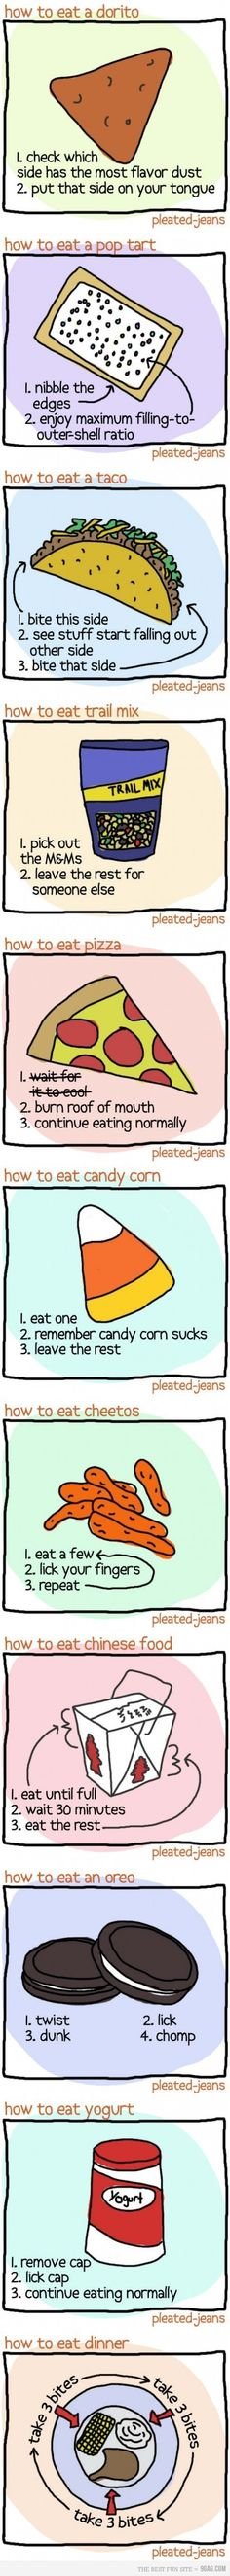 eating diagram  - How to eat a...